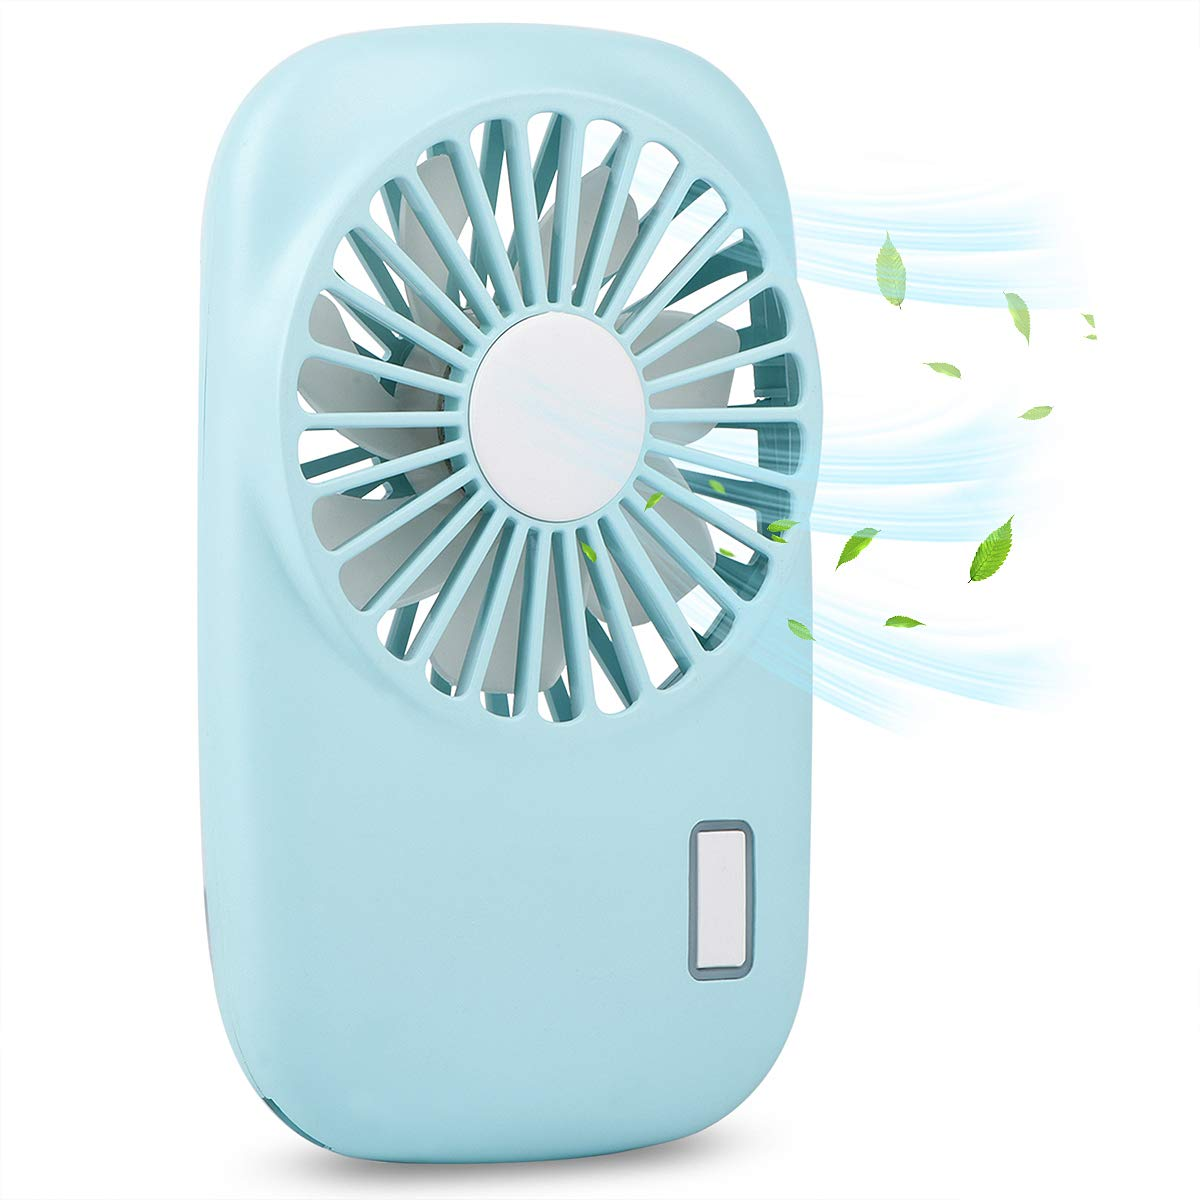 Accering Portable Fan, Mini Pocket Fan with 2 Speed Adjustable, Small Handheld Imitation Camera Personal Fan USB Rechargeable or Battery Powered, for Woman/Man/Girls/Boys (Blue)